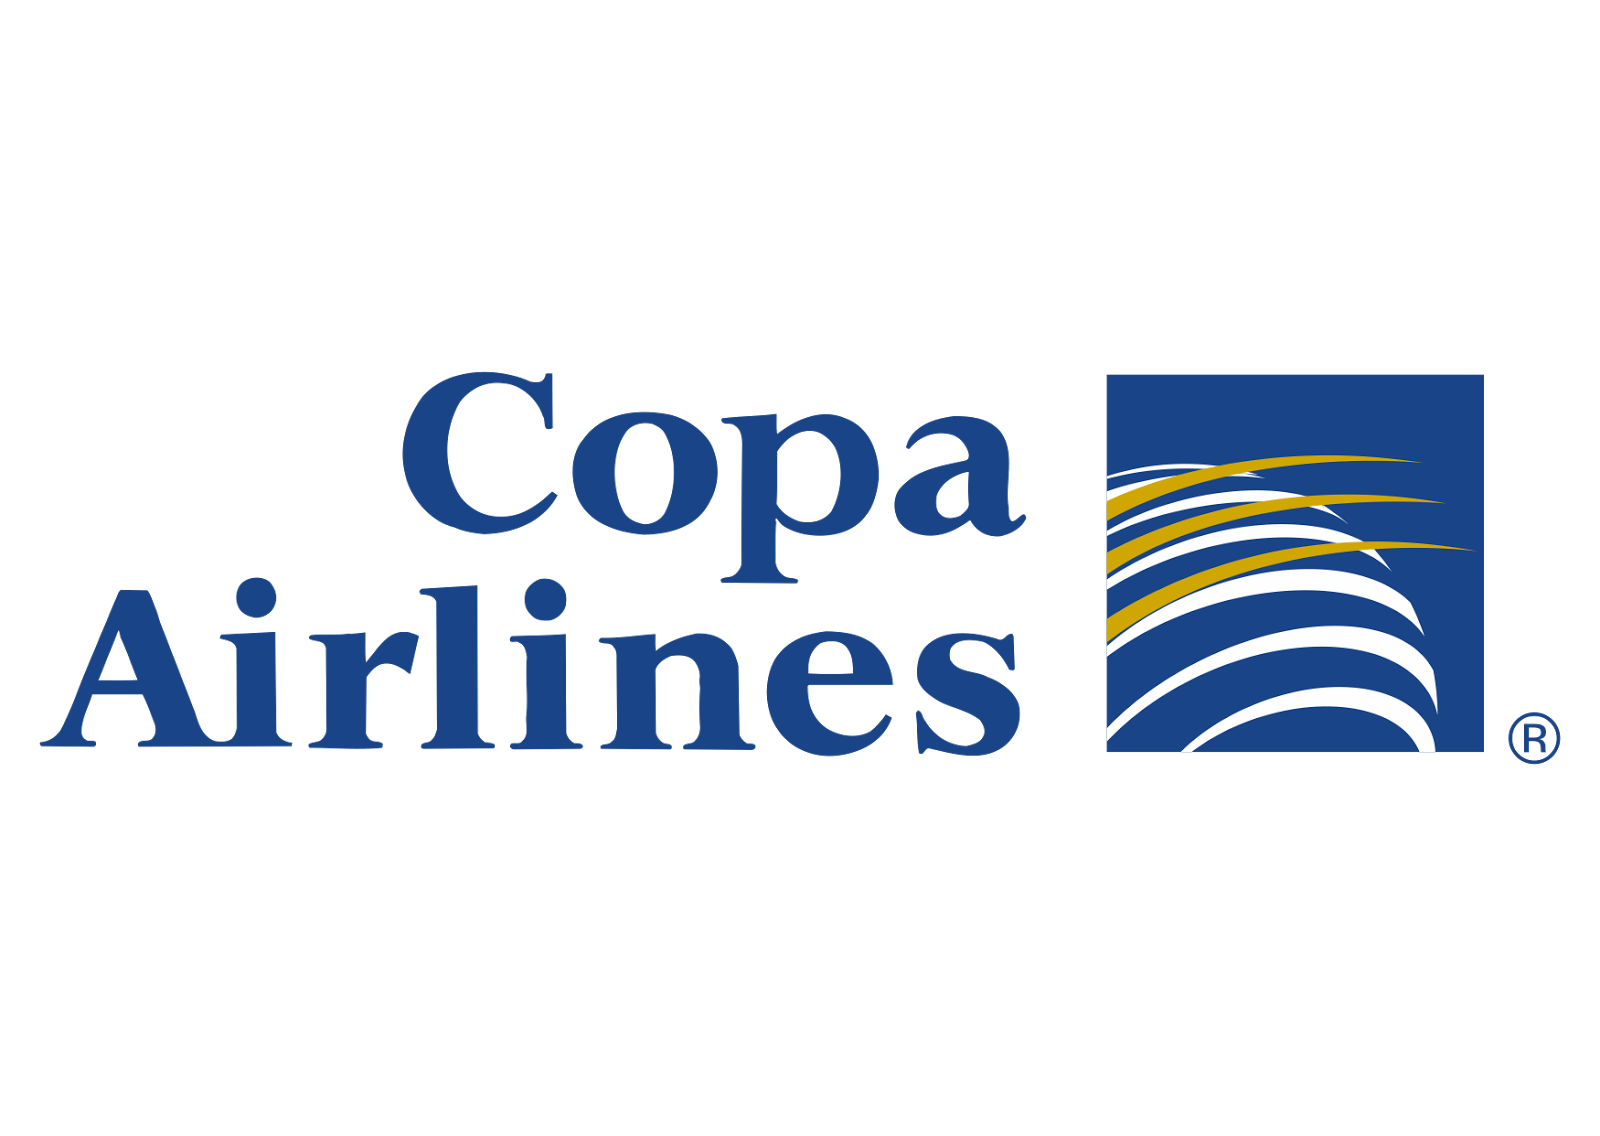 Copa Airlines vector logo.png